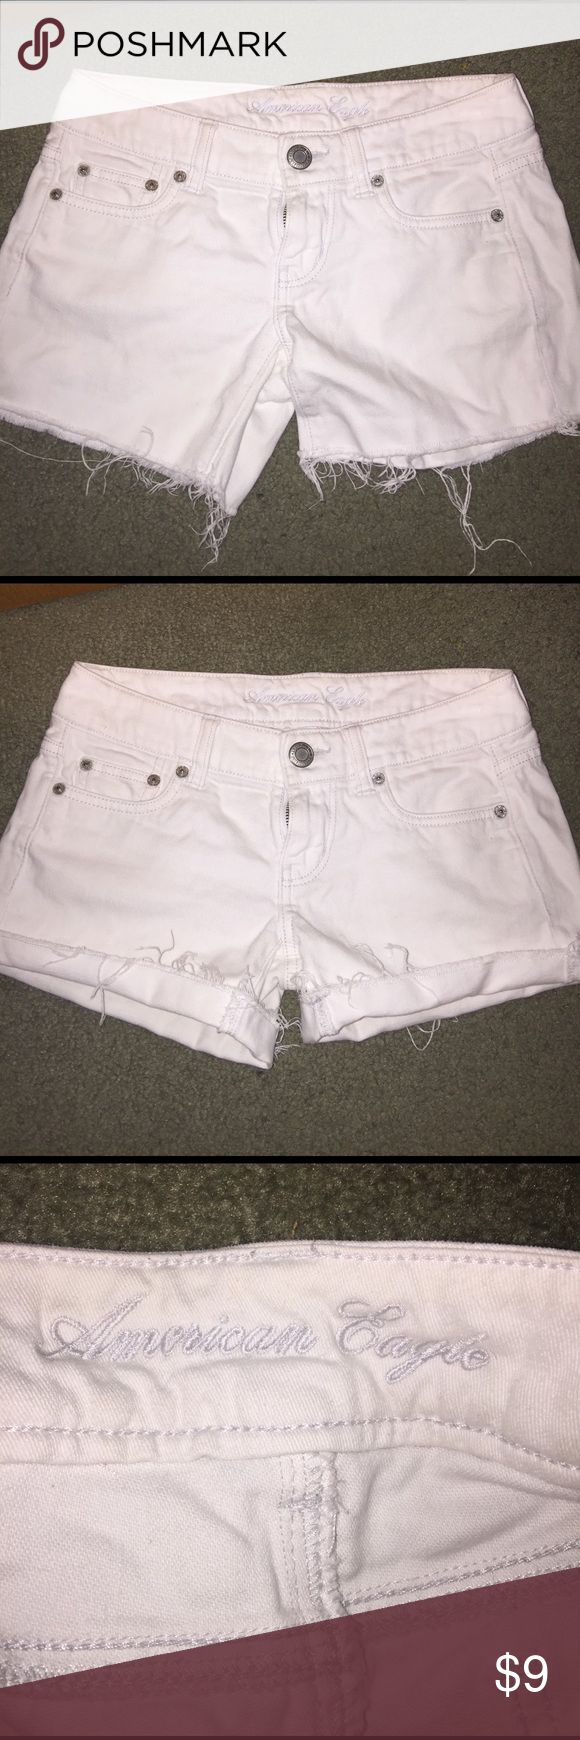 White American Eagle Shorts 💖 •American Eagle Shorts •White 💖 •Size 00 •Very Good Condition ! •No trades 🚫 •Bundles 💕 American Eagle Outfitters Shorts Jean Shorts